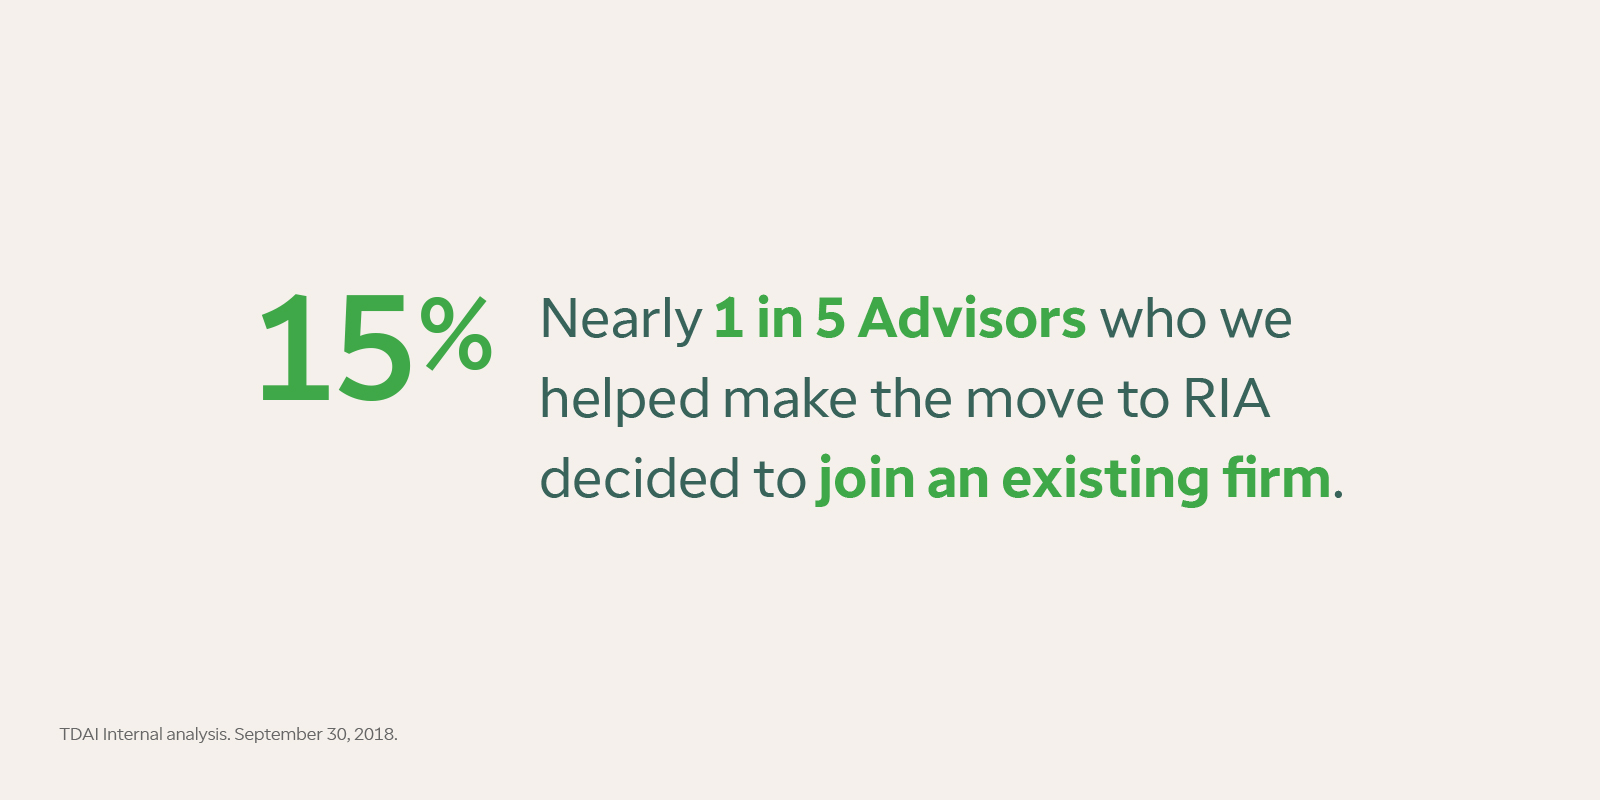 Neary 1 in 5 (or 15% of) Advisors who we helped make the move to RIA decided to join an existing firm. Source: TDAI Internal analysis. September 30, 2018.